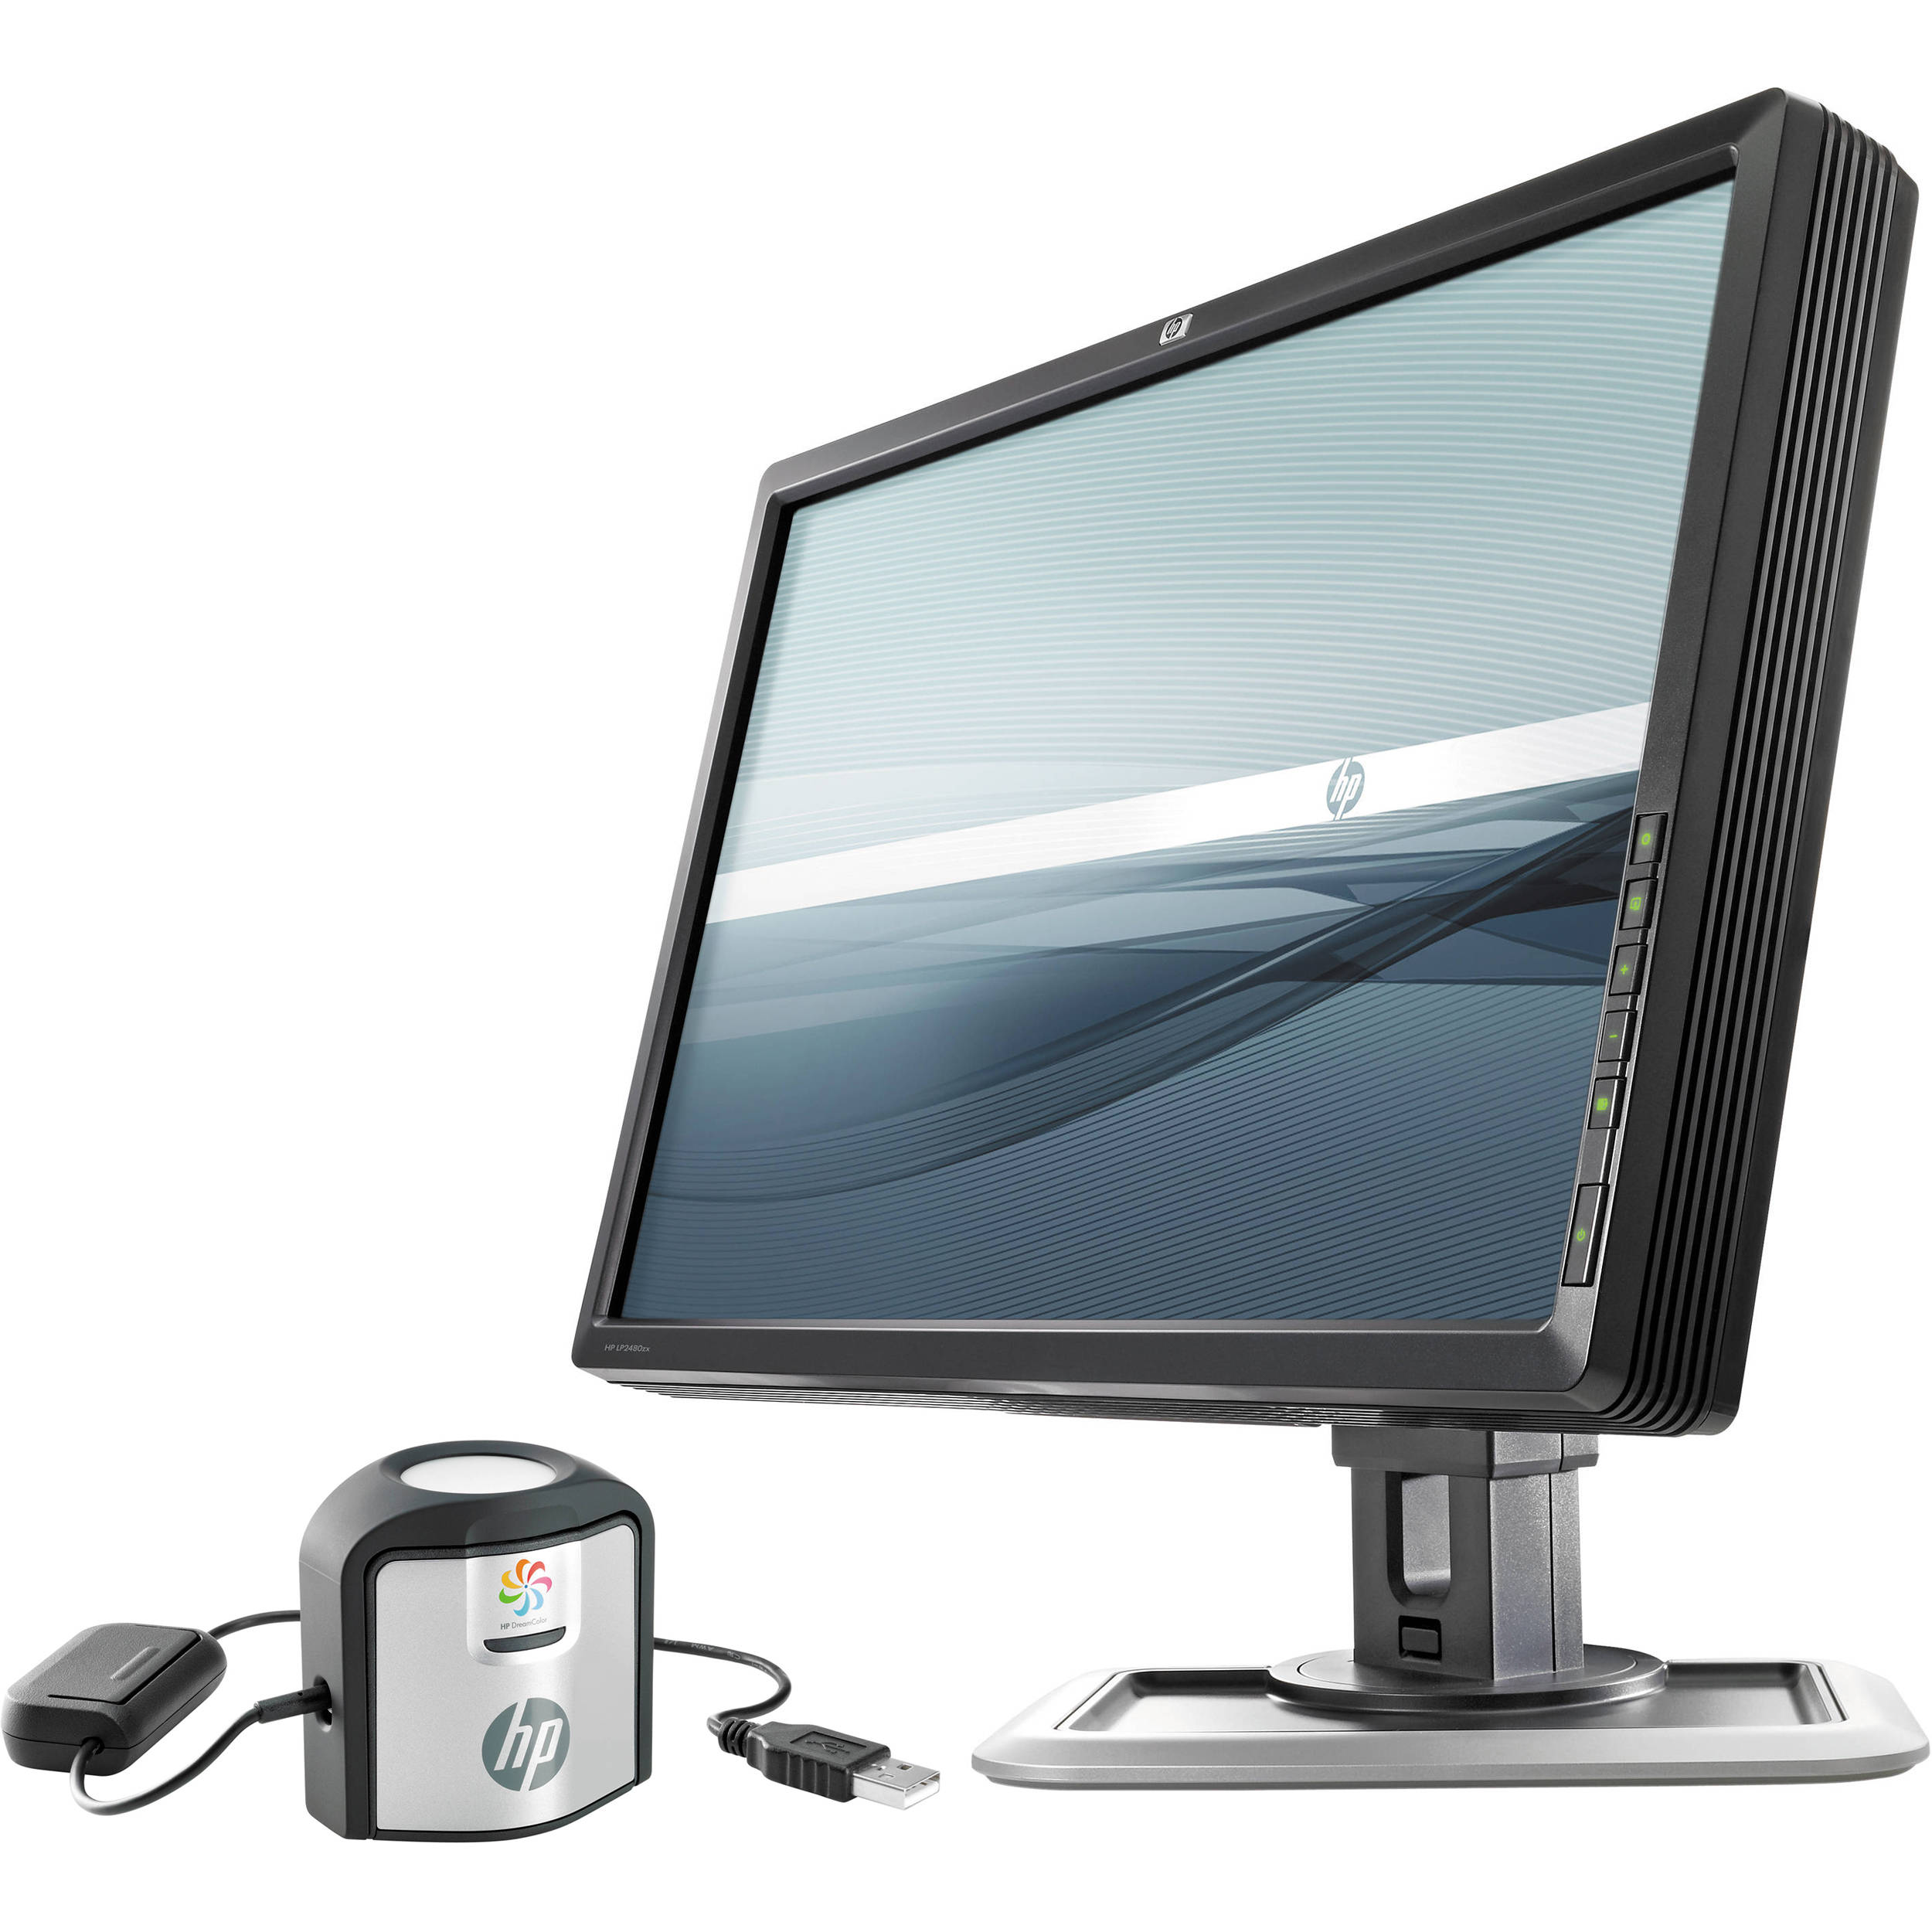 hp dreamcolor calibration system manual